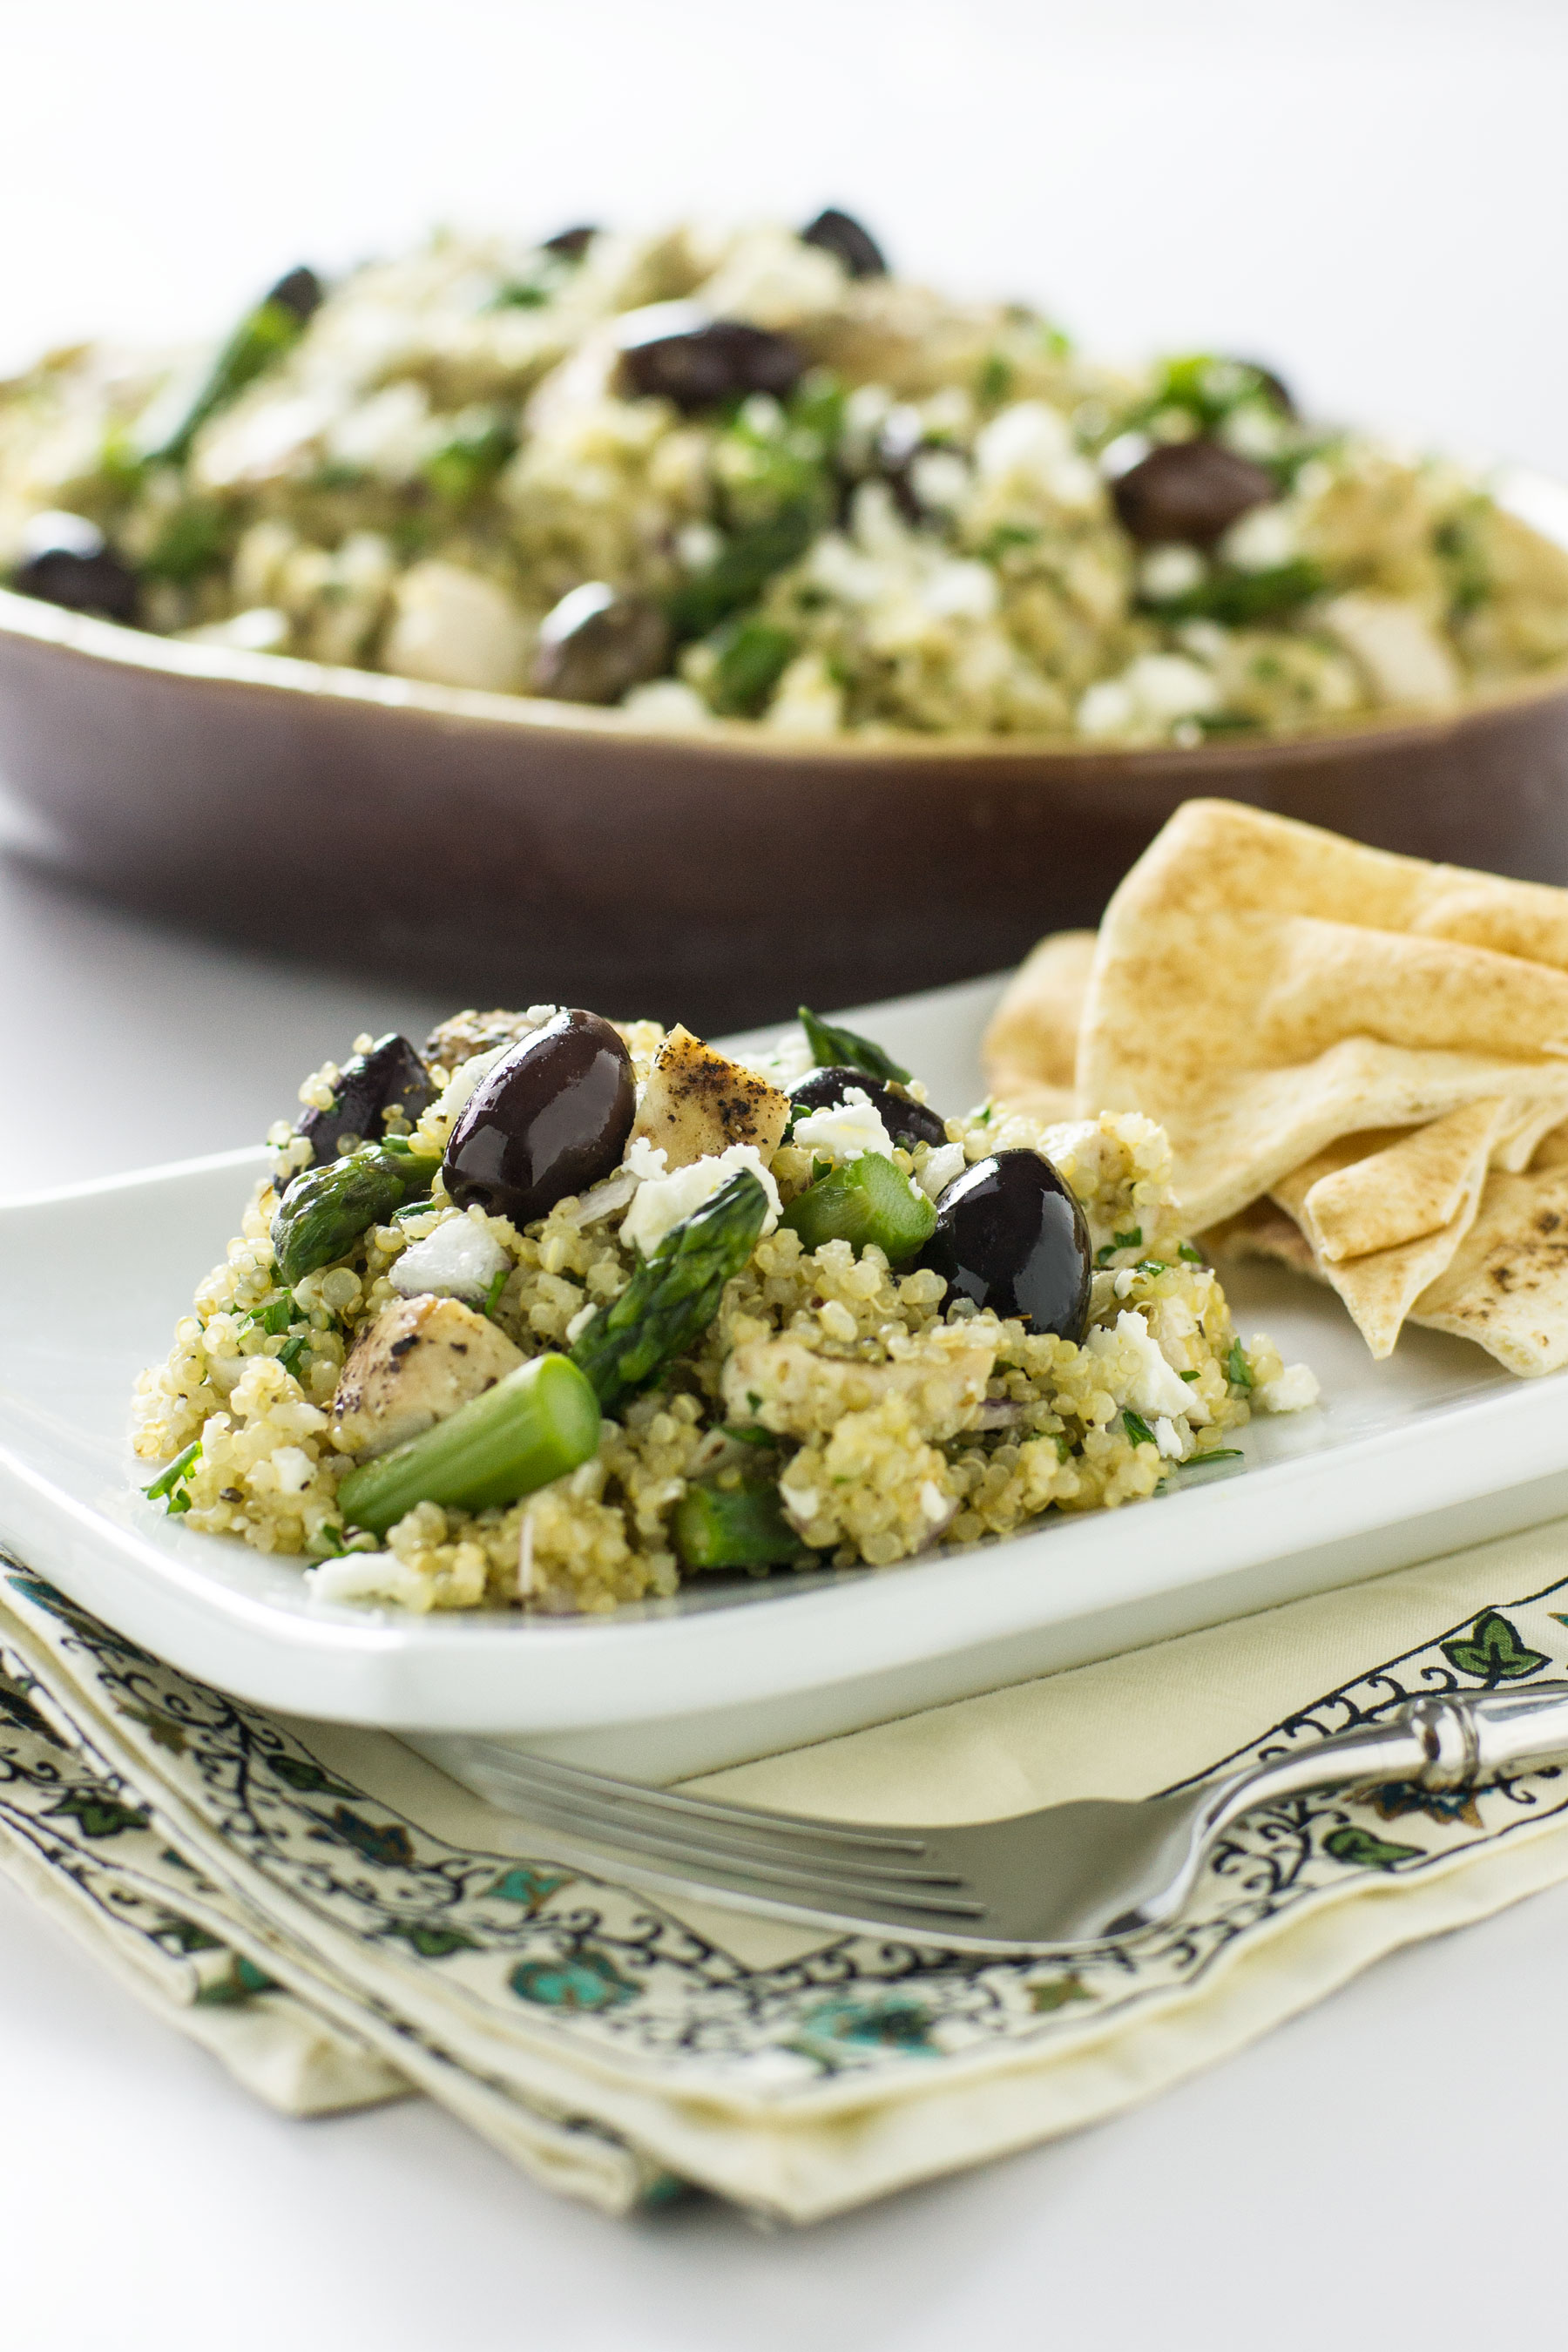 Mediterranean Chicken and Quinoa Salad by Sam Henderson of Today's Nest